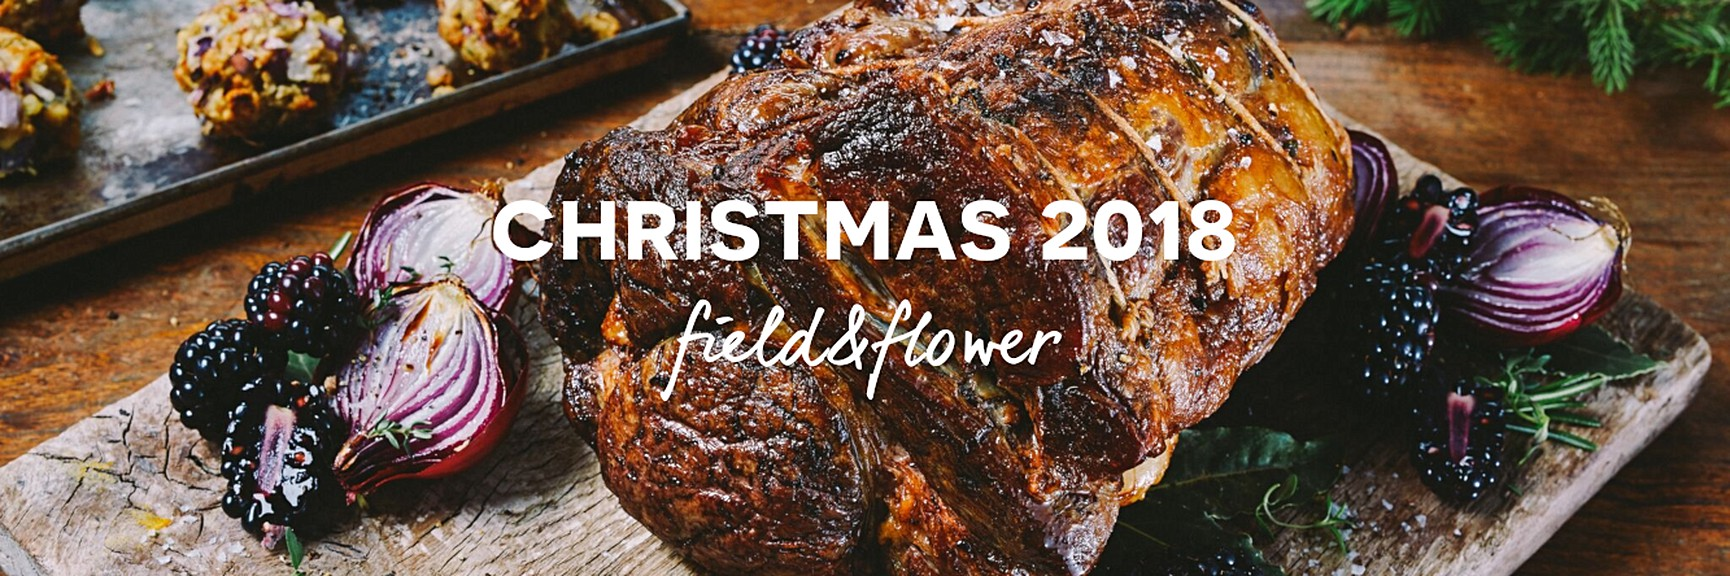 Buy Christmas Meat 2018 | Online Christmas Butcher Fresh Meat ...